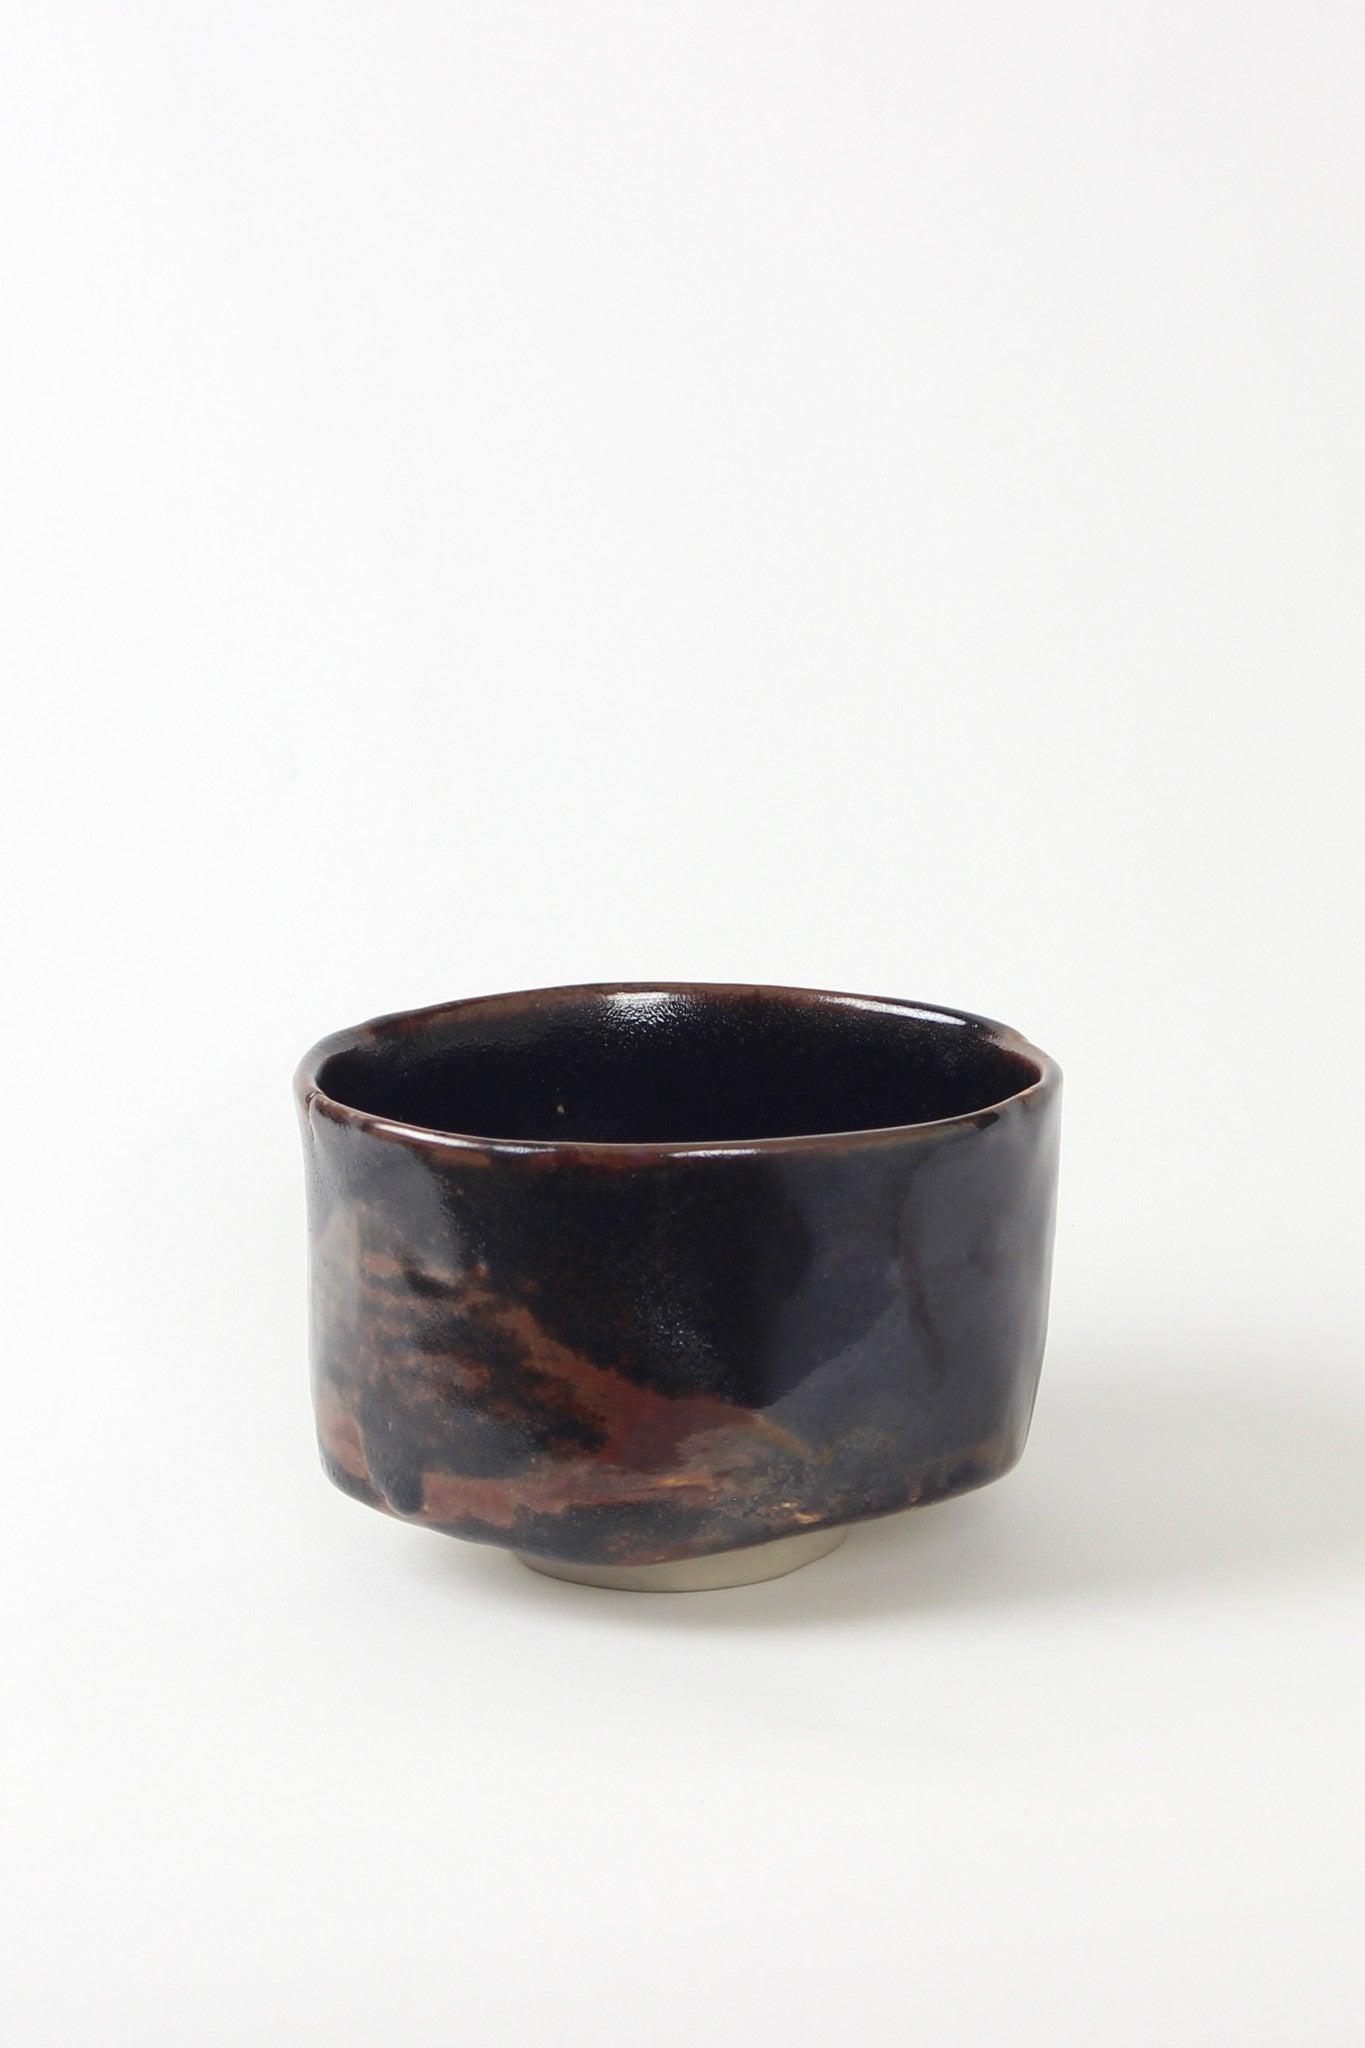 JAPANESE HANDMADE BOWL